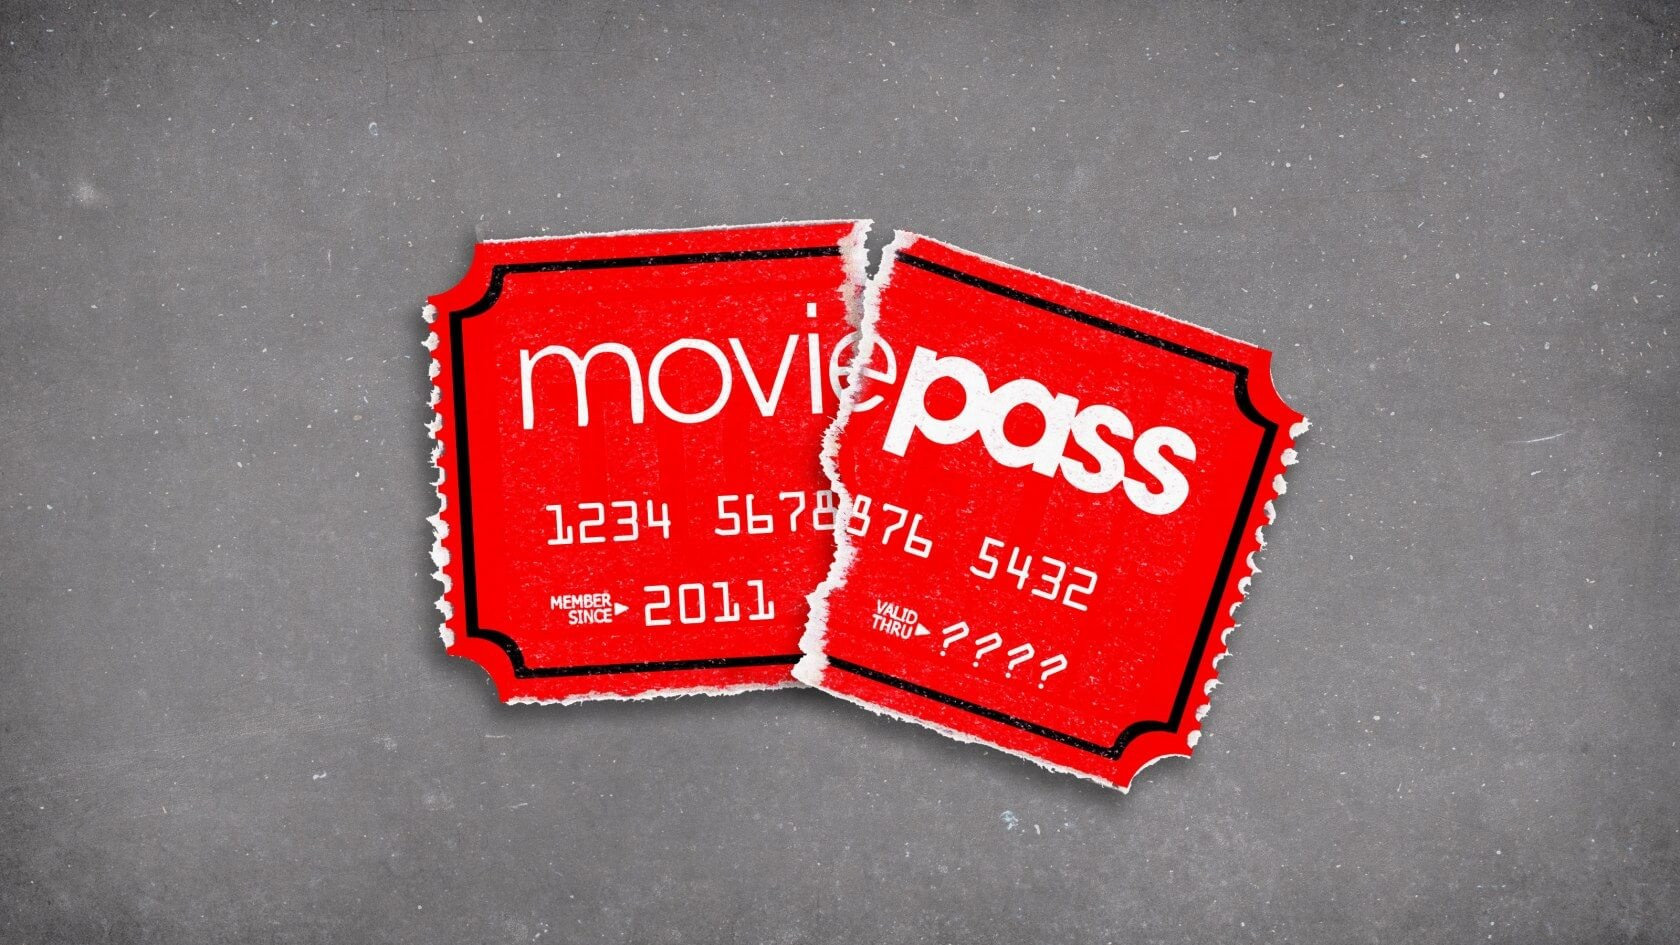 MoviePass 'interrupts service' with just 24 hours' notice